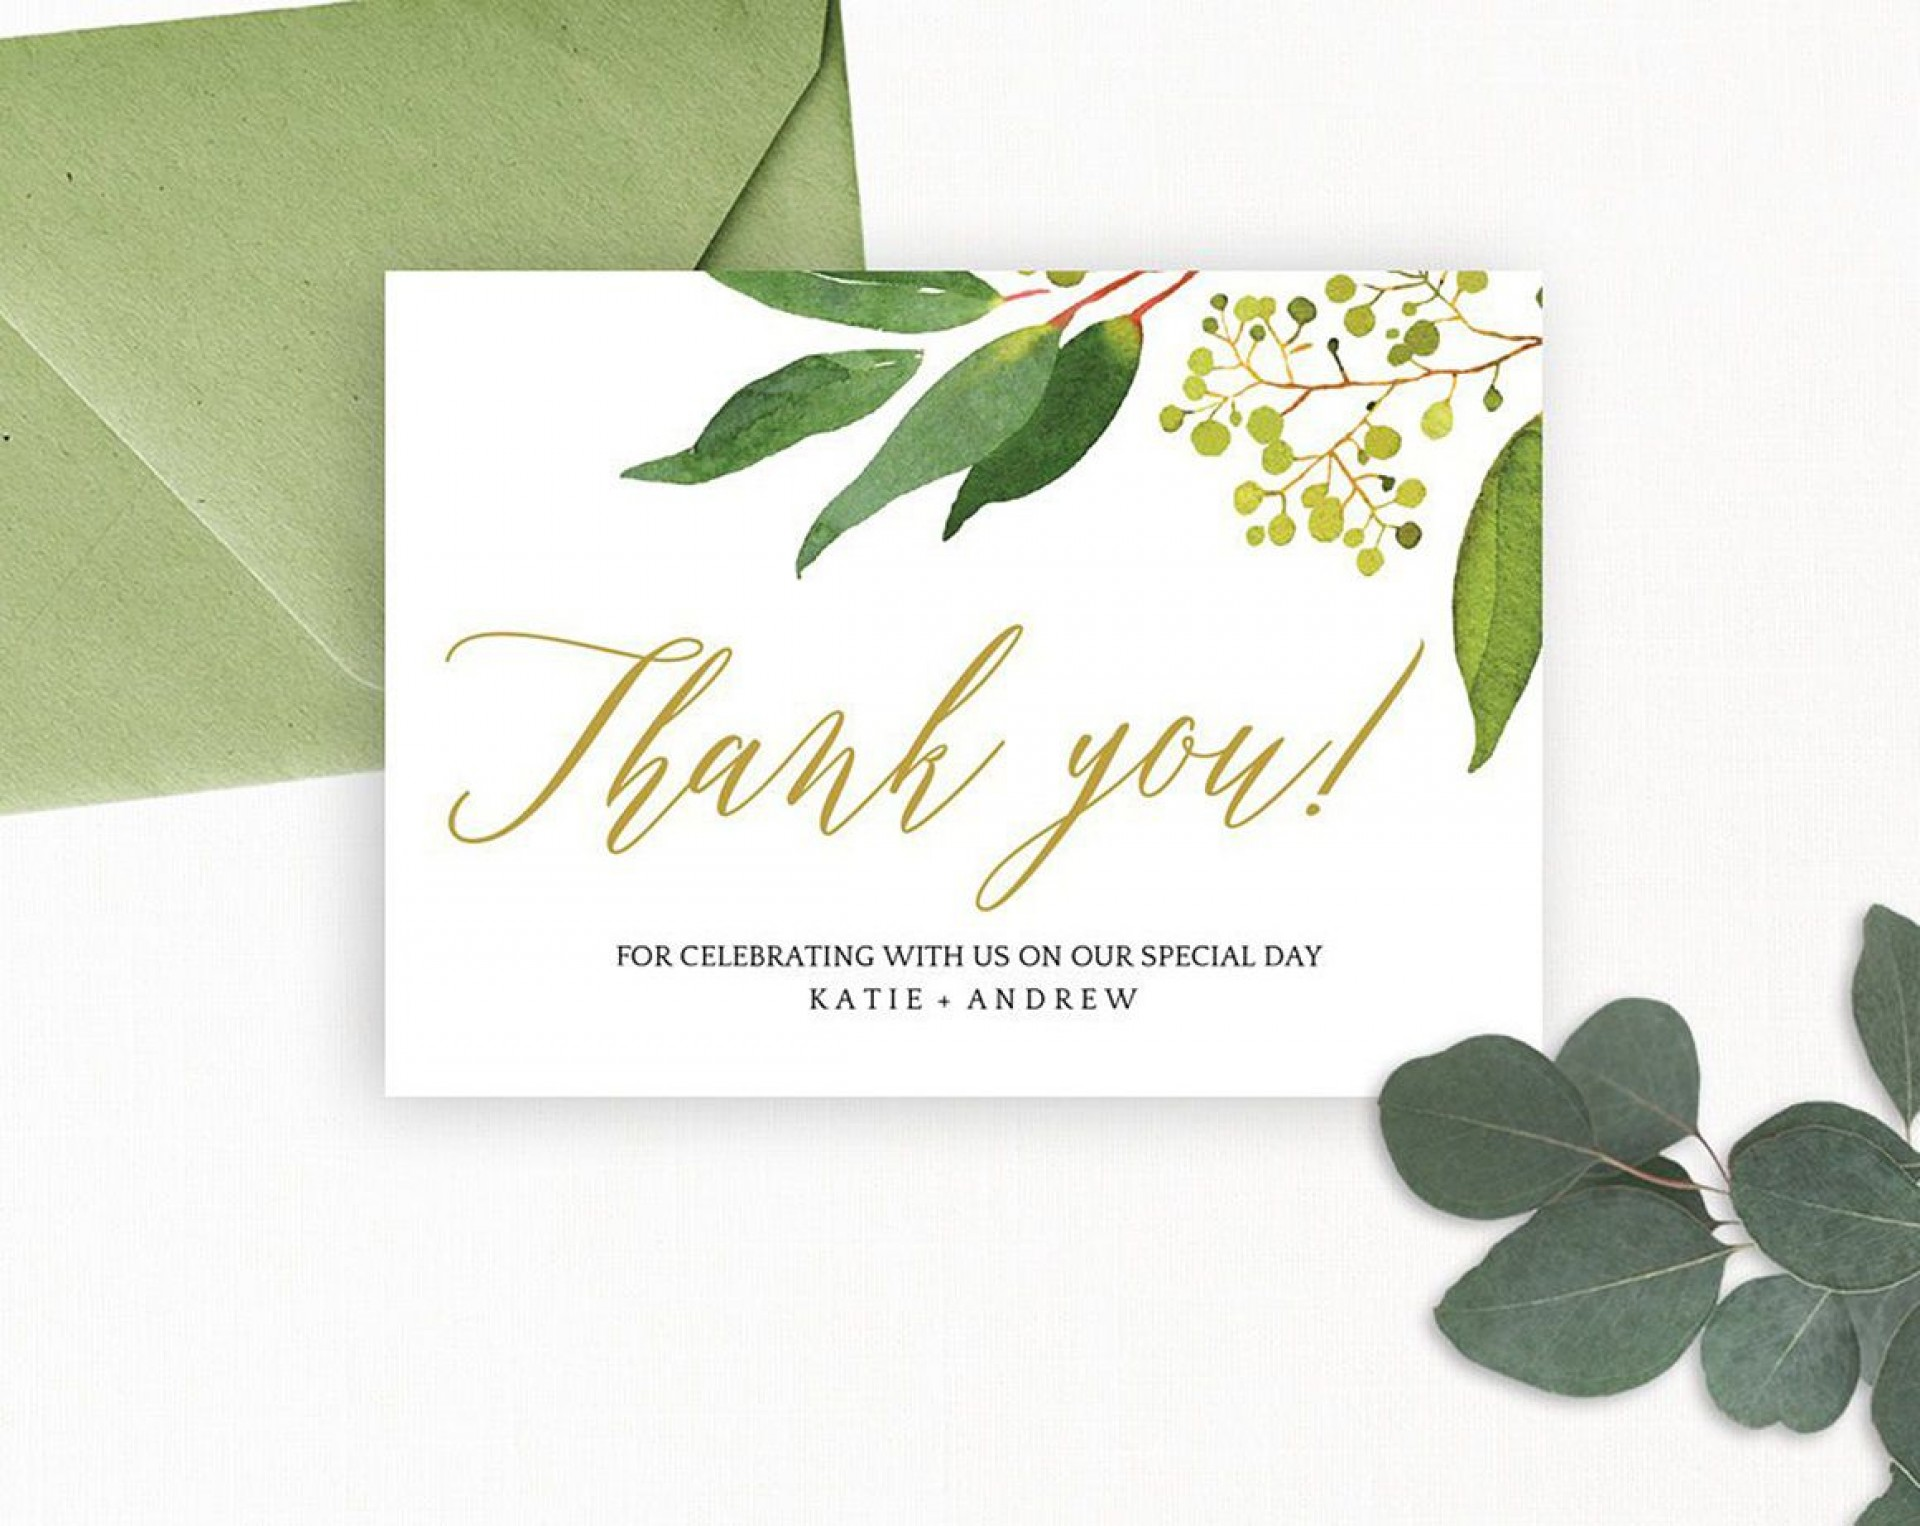 008 Sensational Wedding Thank You Card Template High Definition  Message Sample Free Download Wording For Money1920